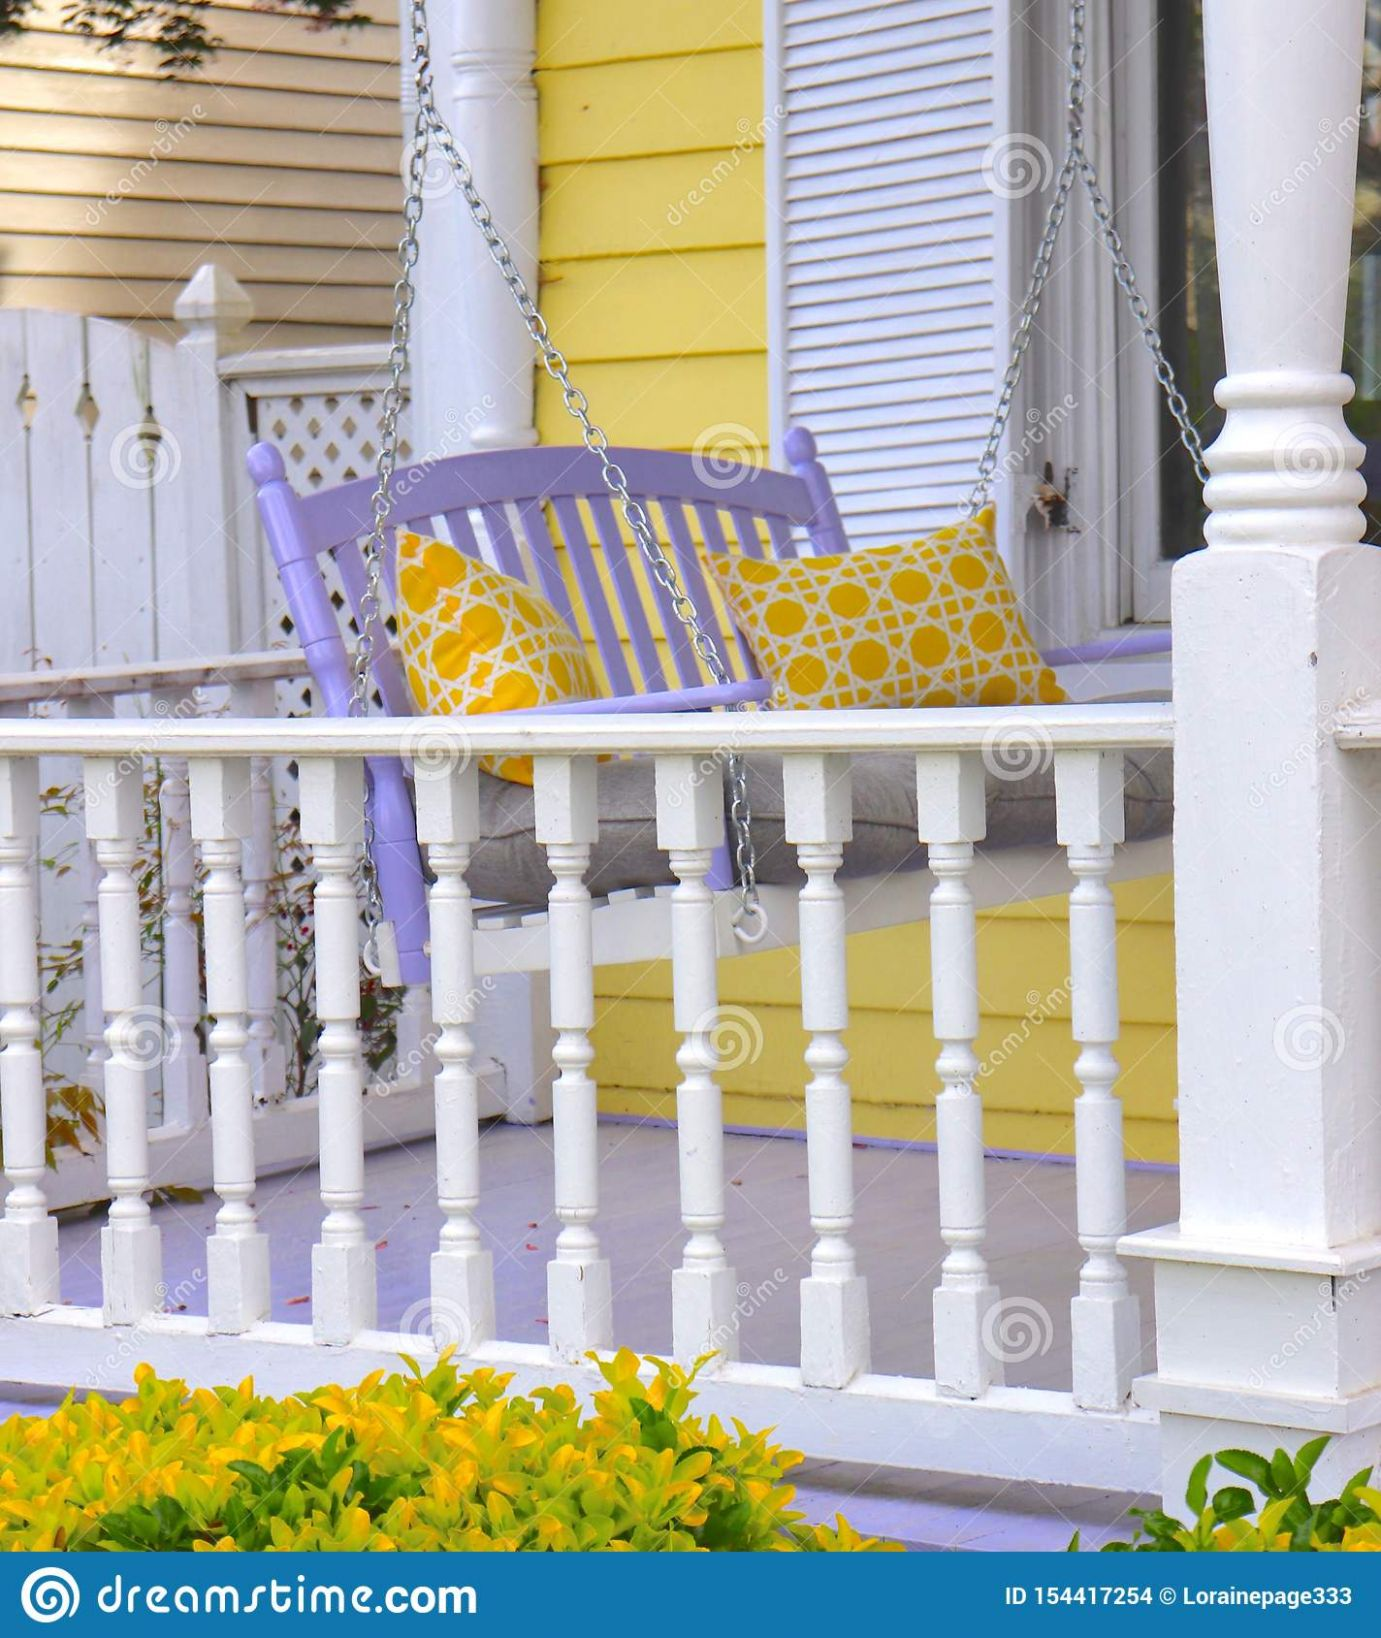 Porch Decor With Lavender Swing And Yellow Pillows Stock Photo ..